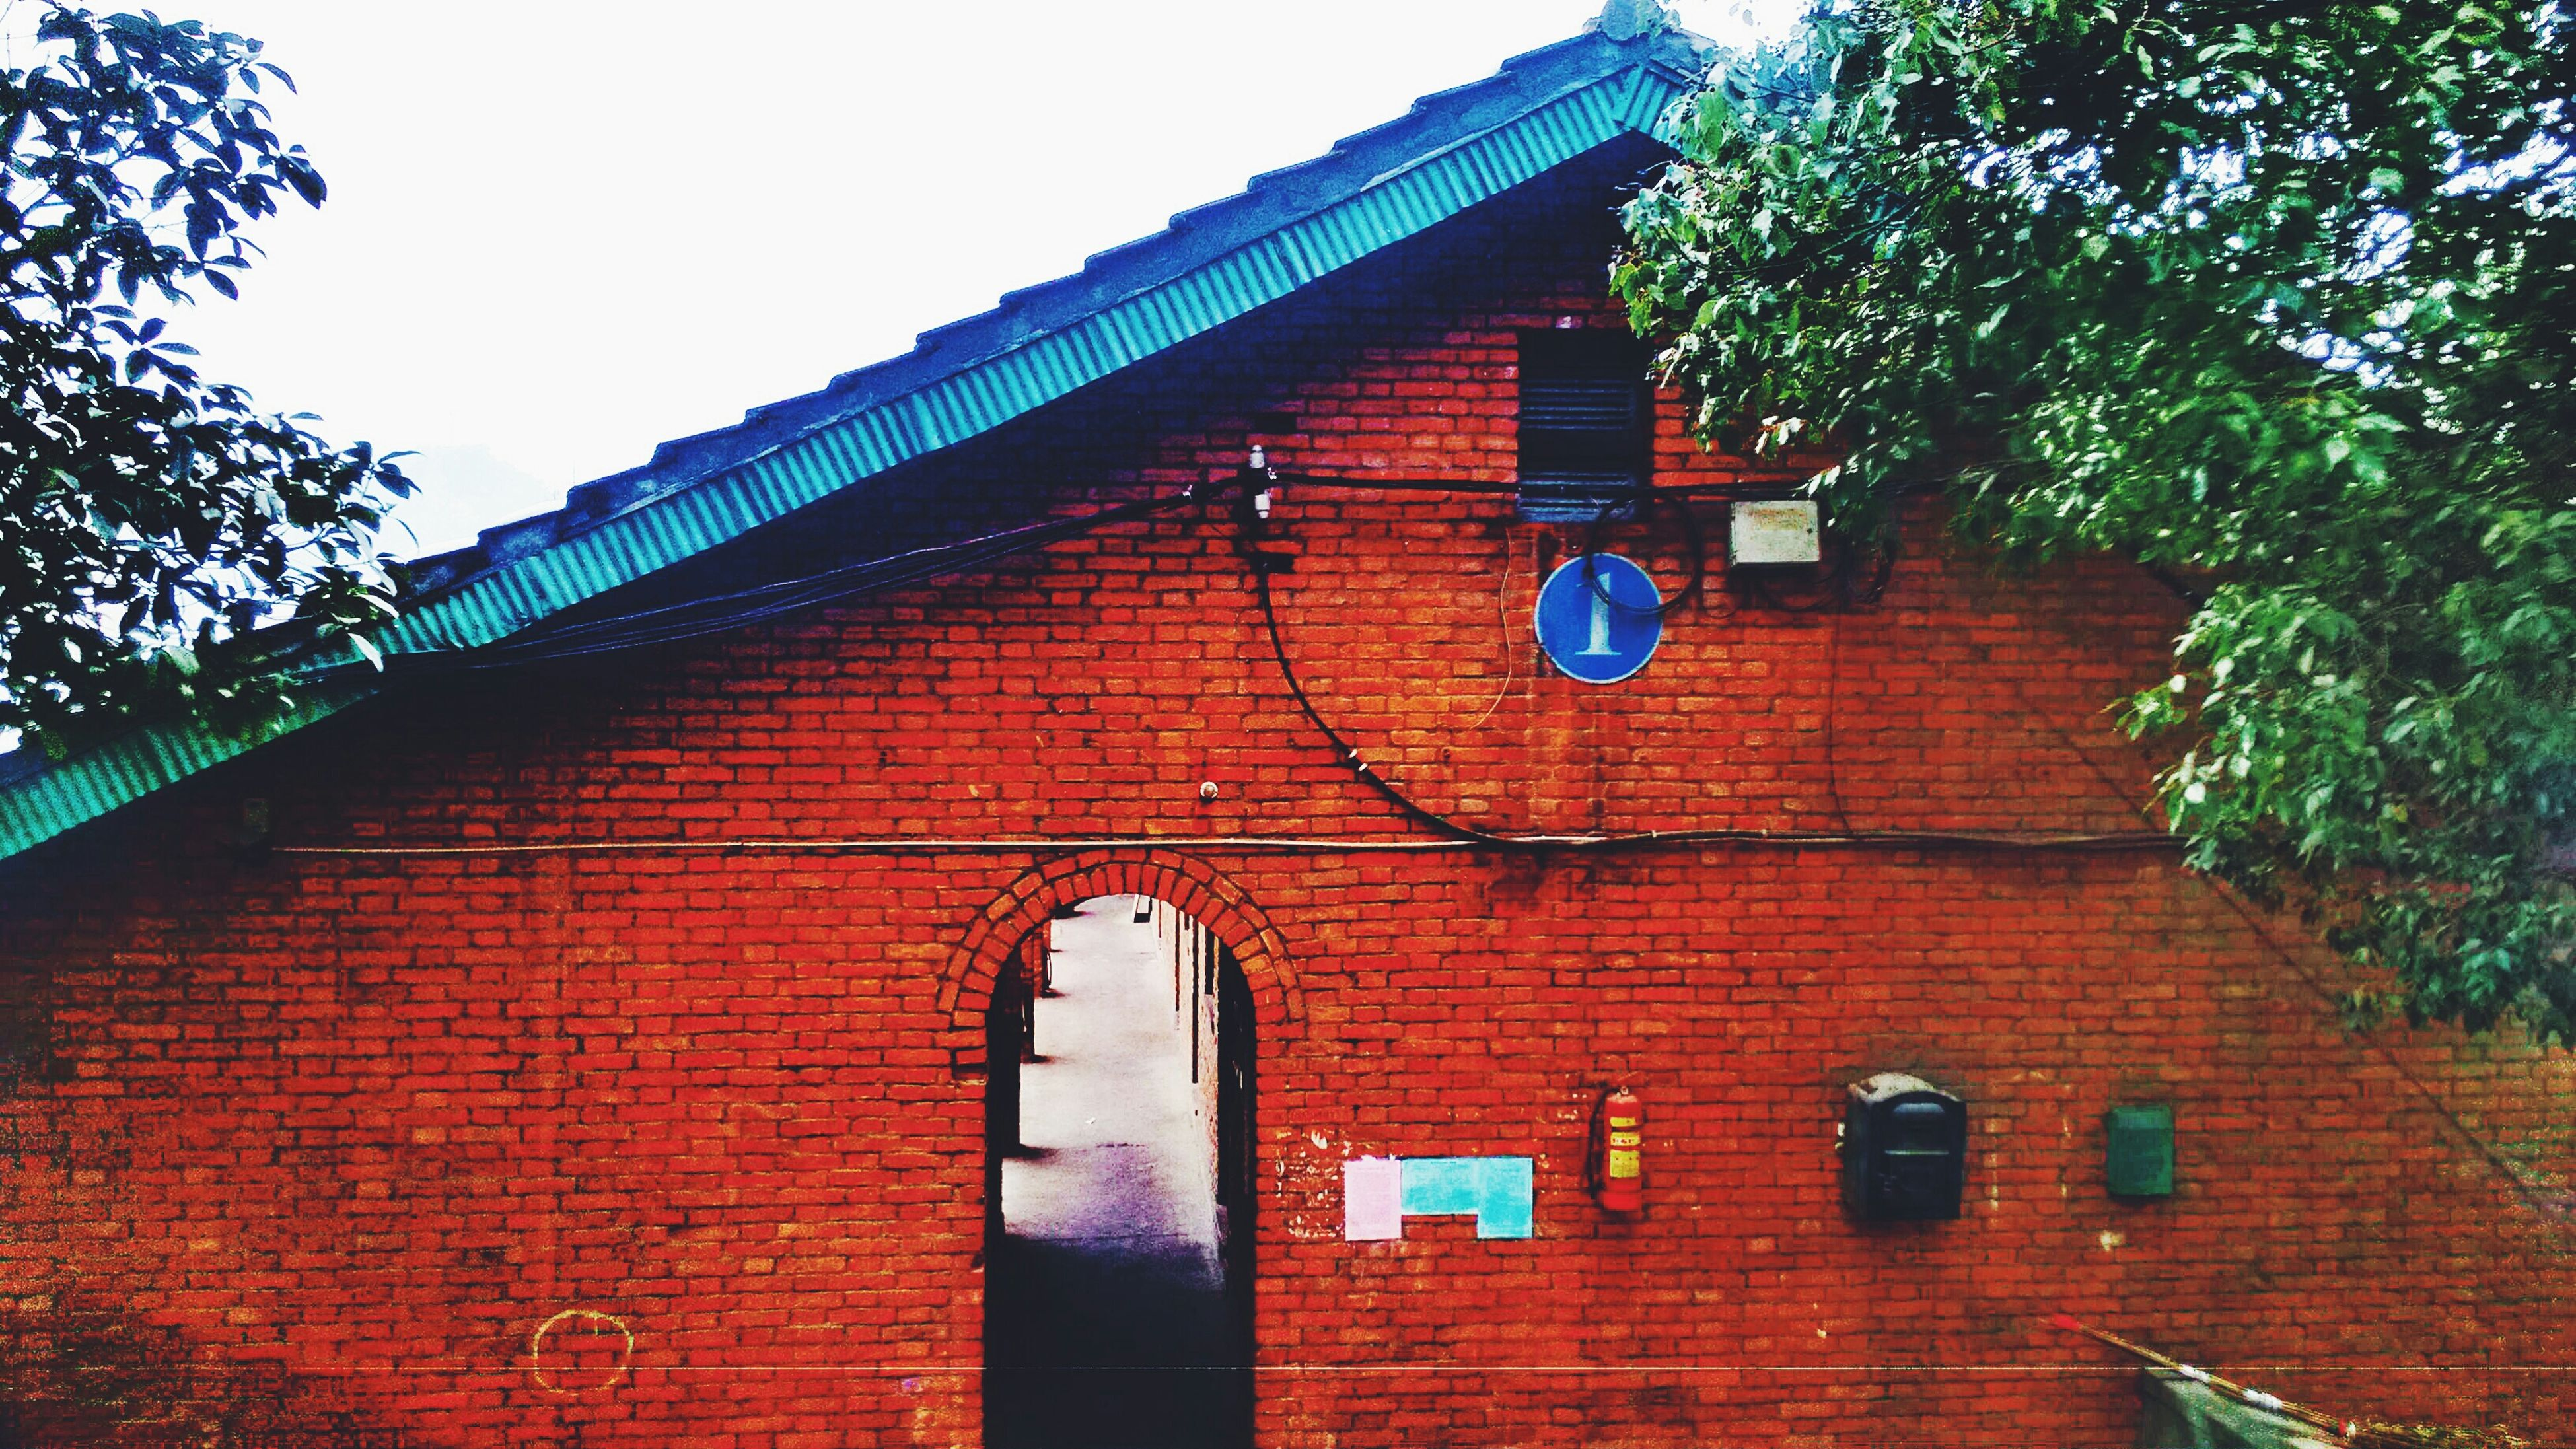 architecture, building exterior, built structure, low angle view, tree, brick wall, red, house, window, clear sky, day, outdoors, wall - building feature, no people, residential structure, sky, building, sunlight, residential building, growth